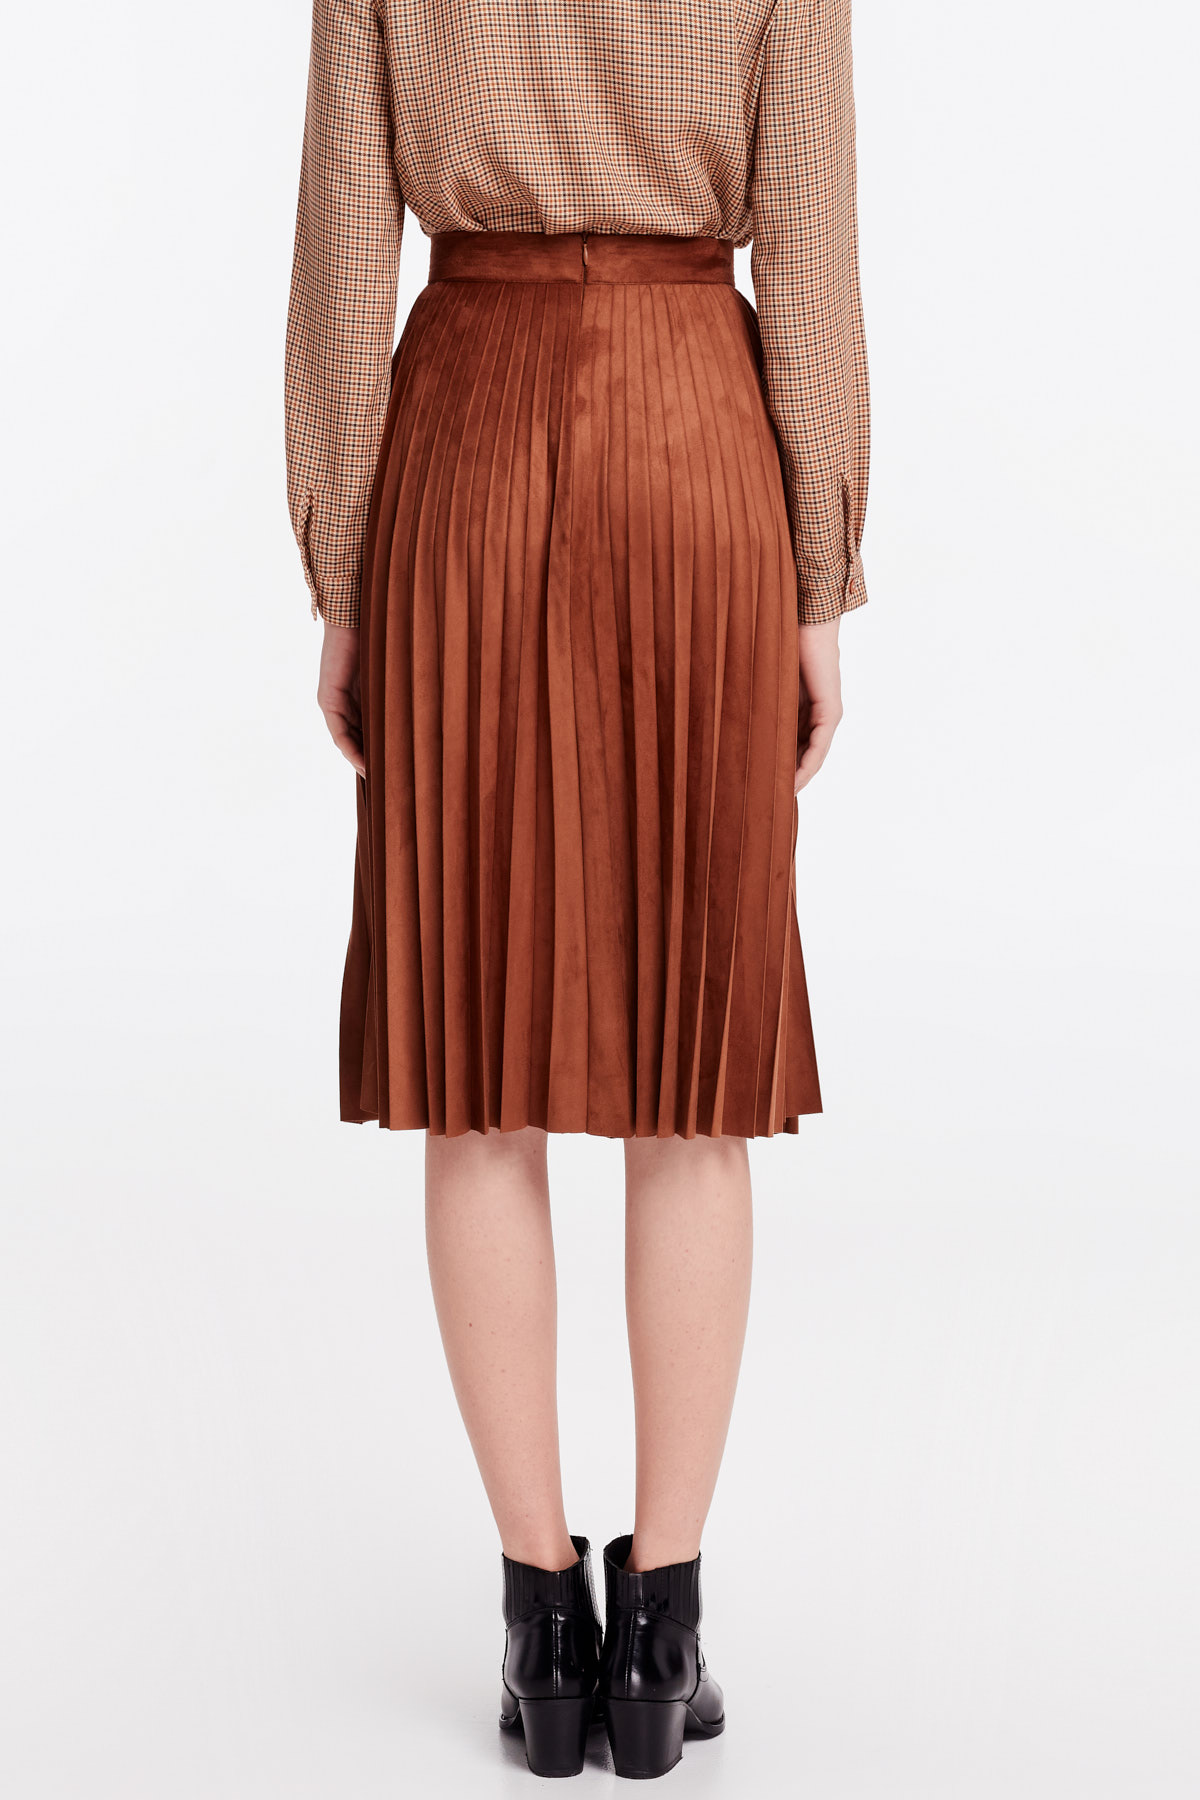 53ba20db89 Brown suede pleated skirt photo 4 - MustHave online store